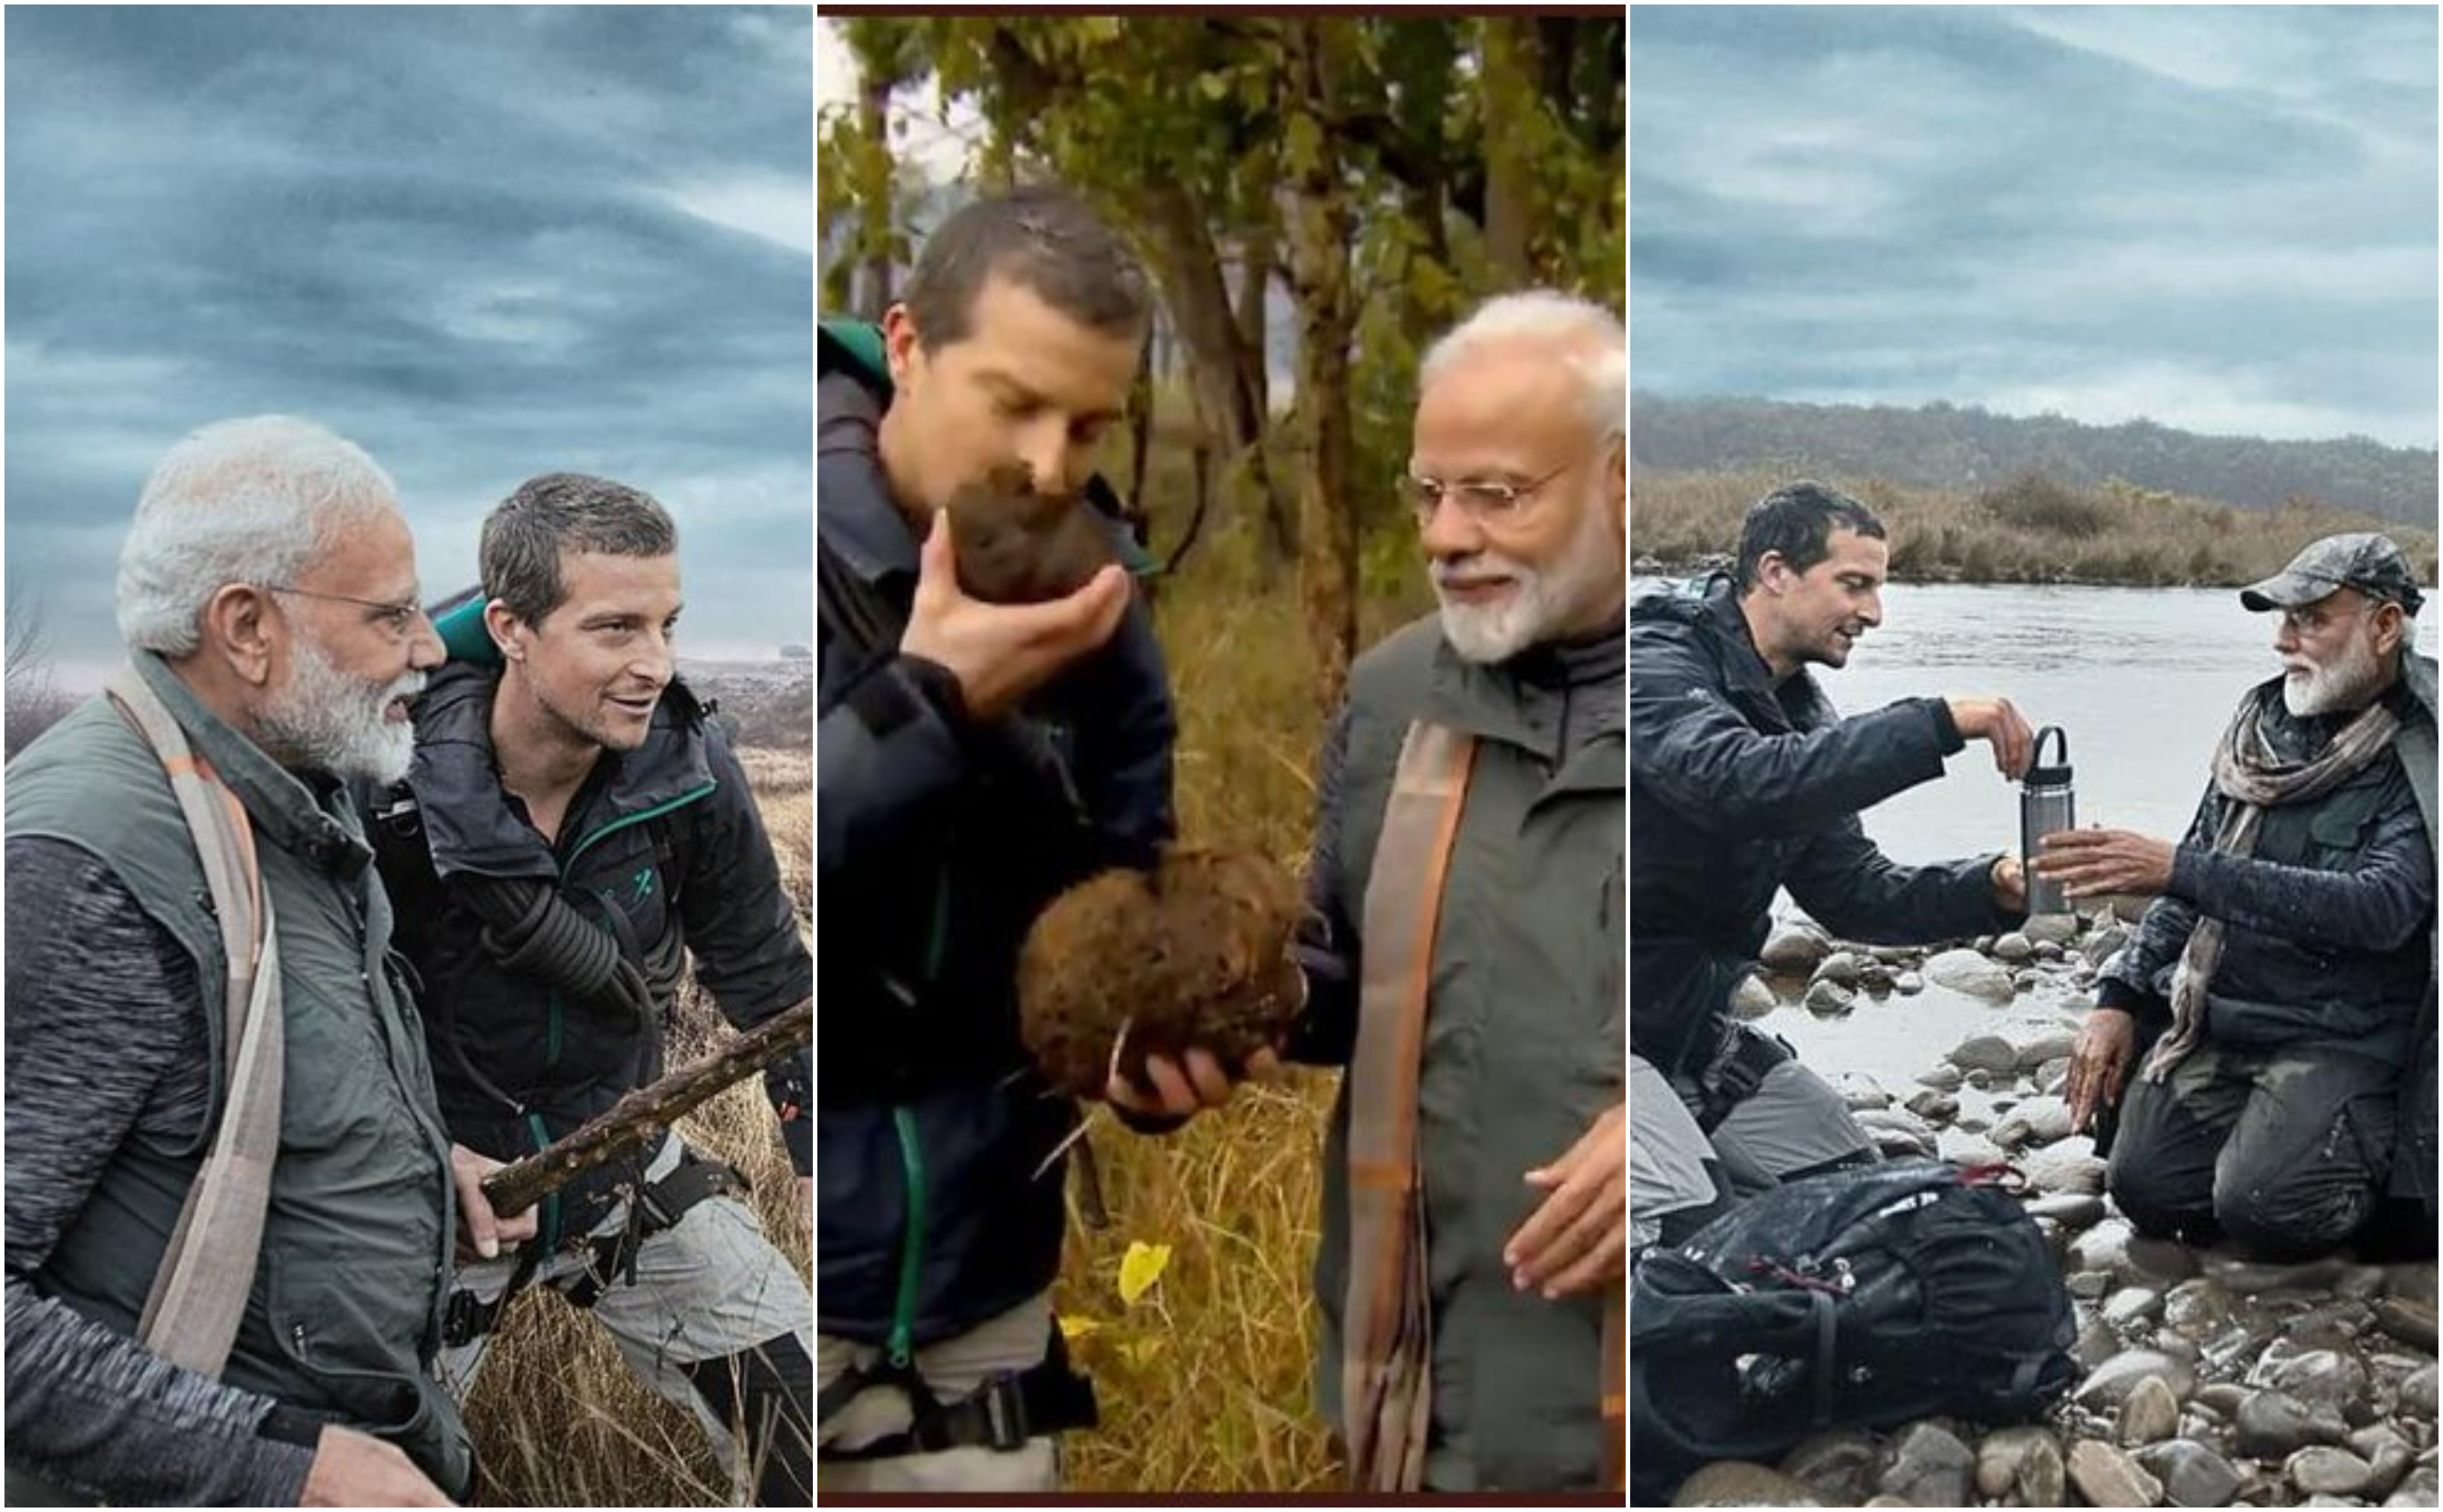 PM Narendra Modi, Bear Grylls, Discovery, Man Vs Wild, News Mobile, News Mobile India